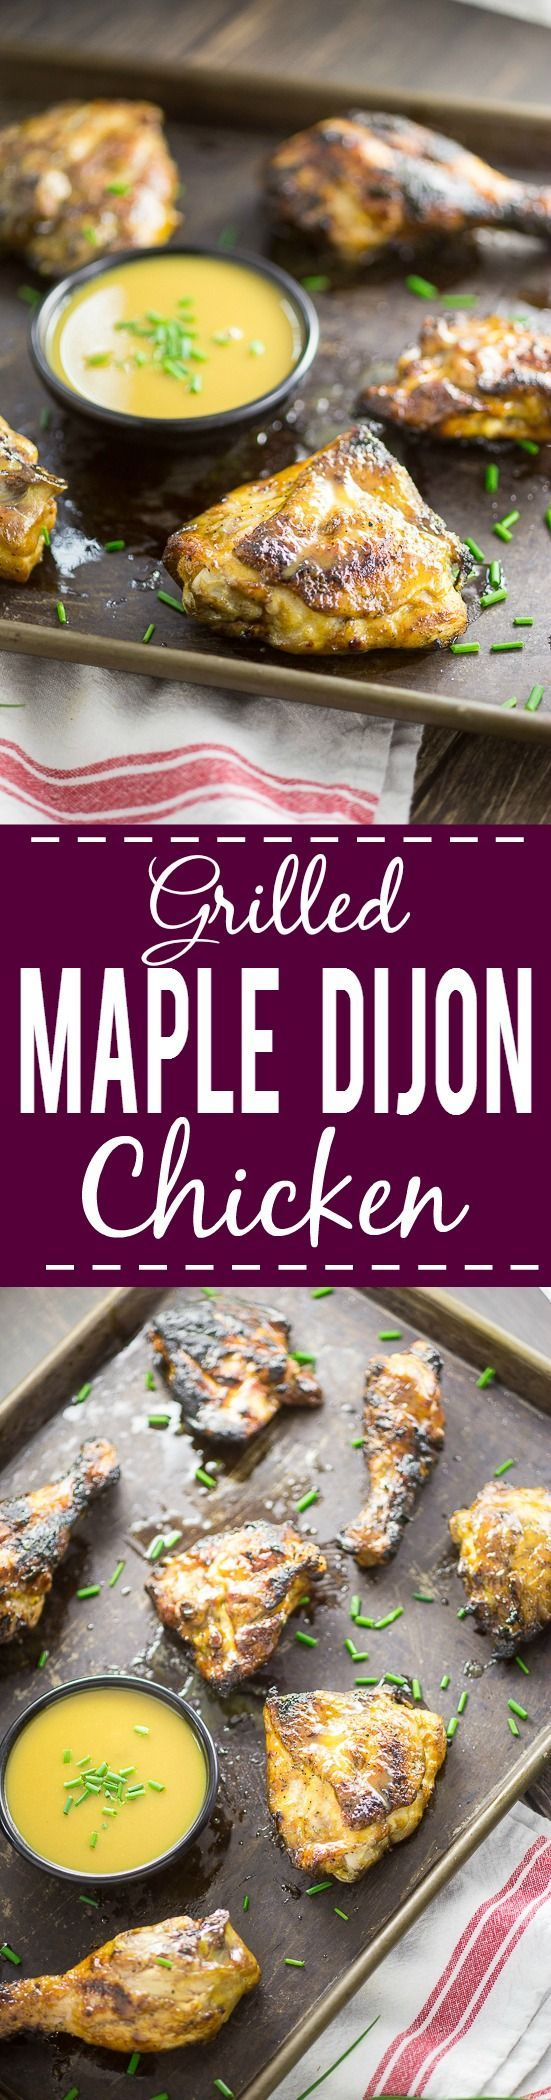 Grilled Maple Dijon Chicken Recipe - Sweet and tangy maple dijon sauce smothered on crispy, grilled chicken to make one amazing Grilled Maple Dijon Chicken recipe for dinner! Perfect and EASY Summer grilling recipe with just 5 ingredients!